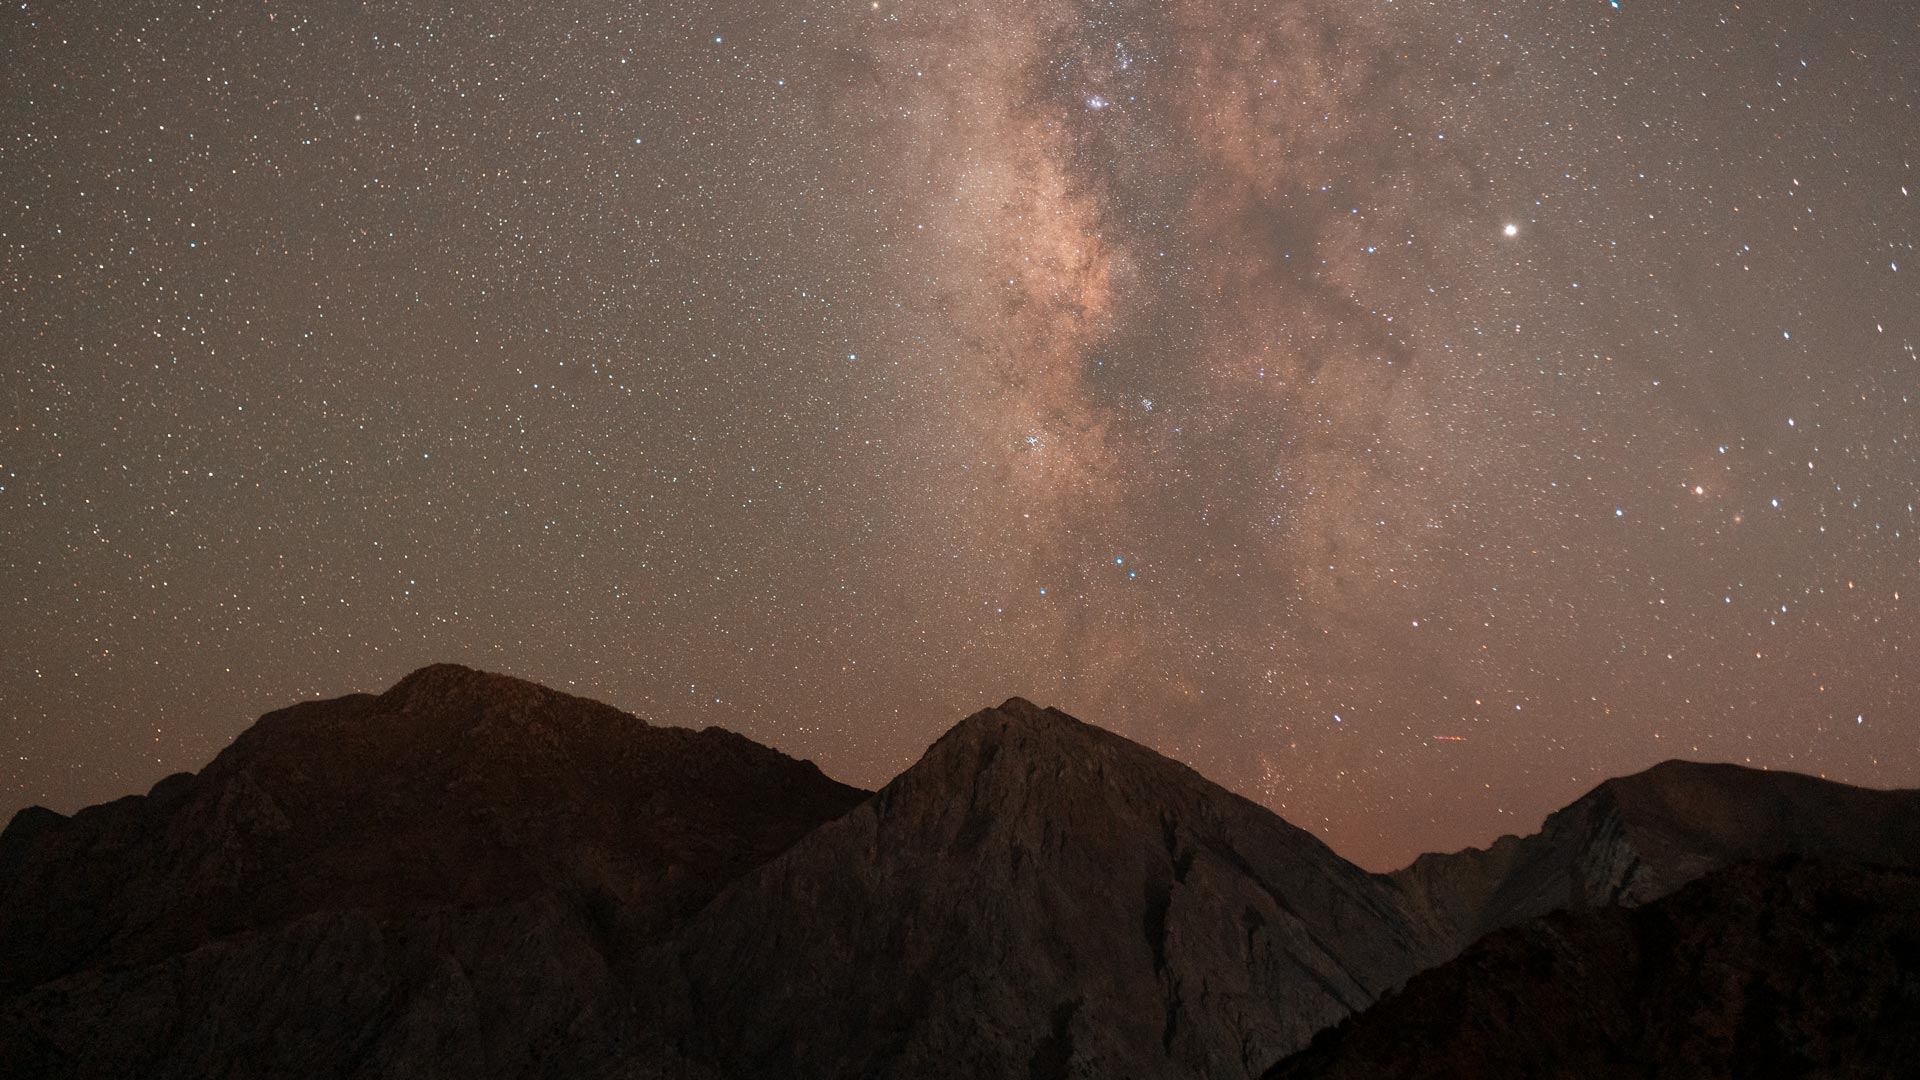 Watching the milkyway over the White Mountains, is a lifetime experience!